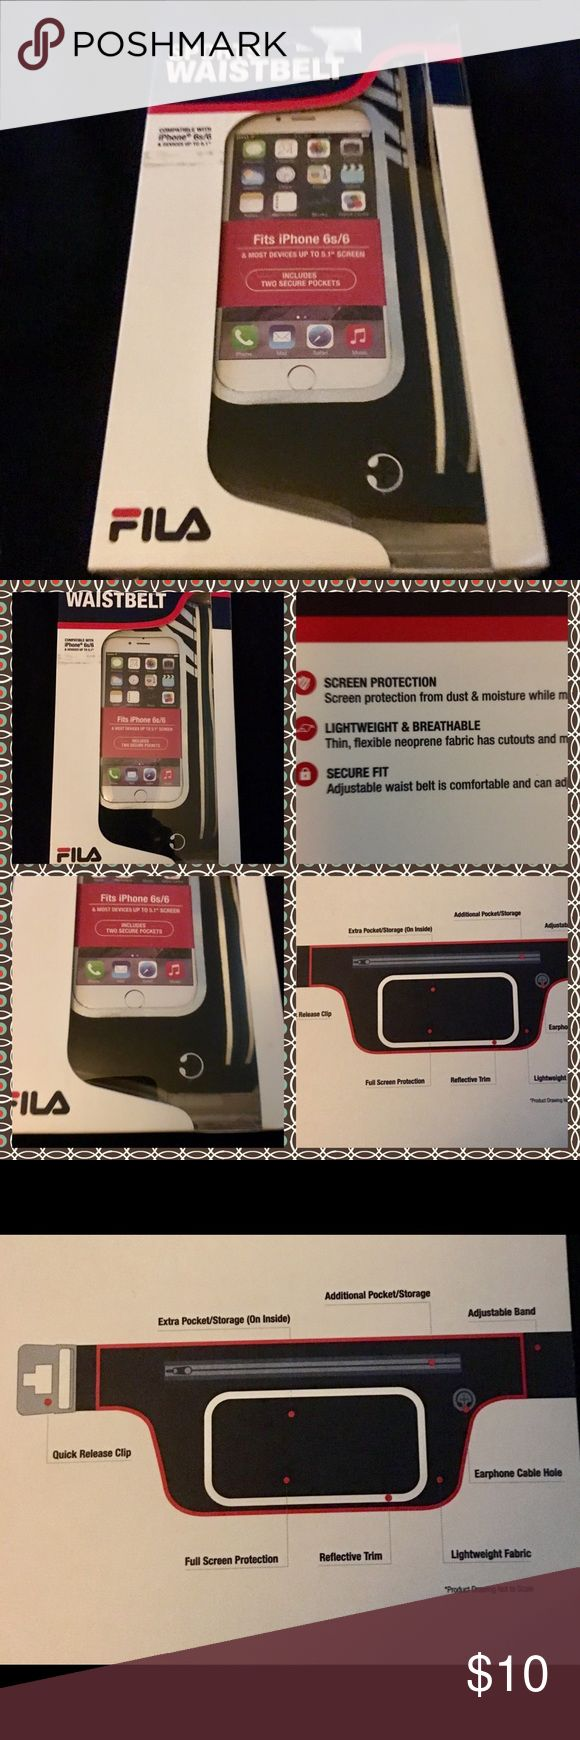 FILA Sports Waistbelt for iPhone 6s Screen Protection, Lightweight & Breathable, Secure Fit, Quick Release Clip, Reflective Trim, NWTB. Fila Accessories Phone Cases